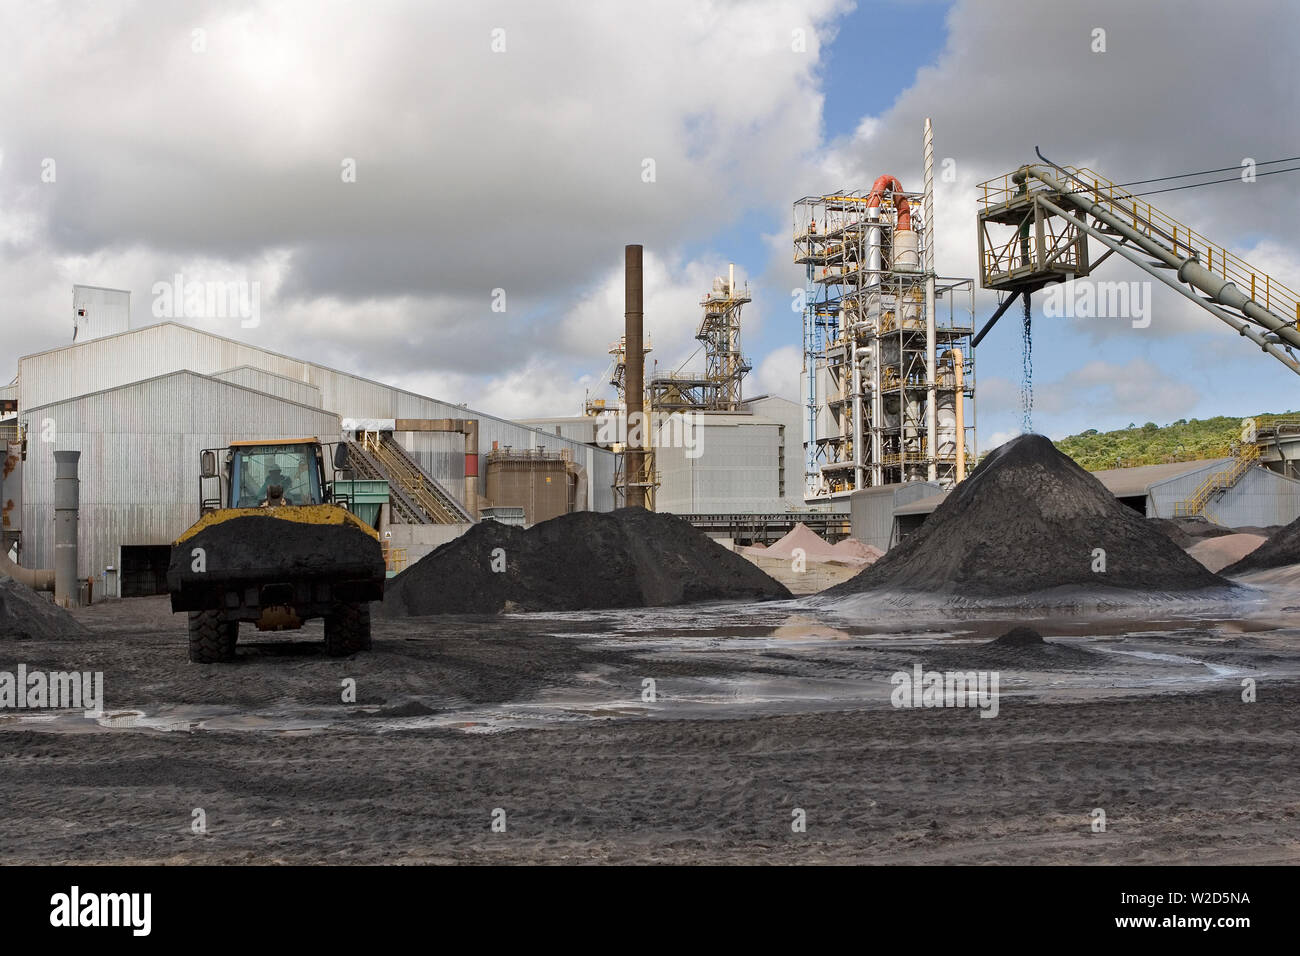 Mining, managing & transporting of titanium mineral sands. Front end loader moving heavy mineral sand concentrate from stock pile to separator plant. Stock Photo